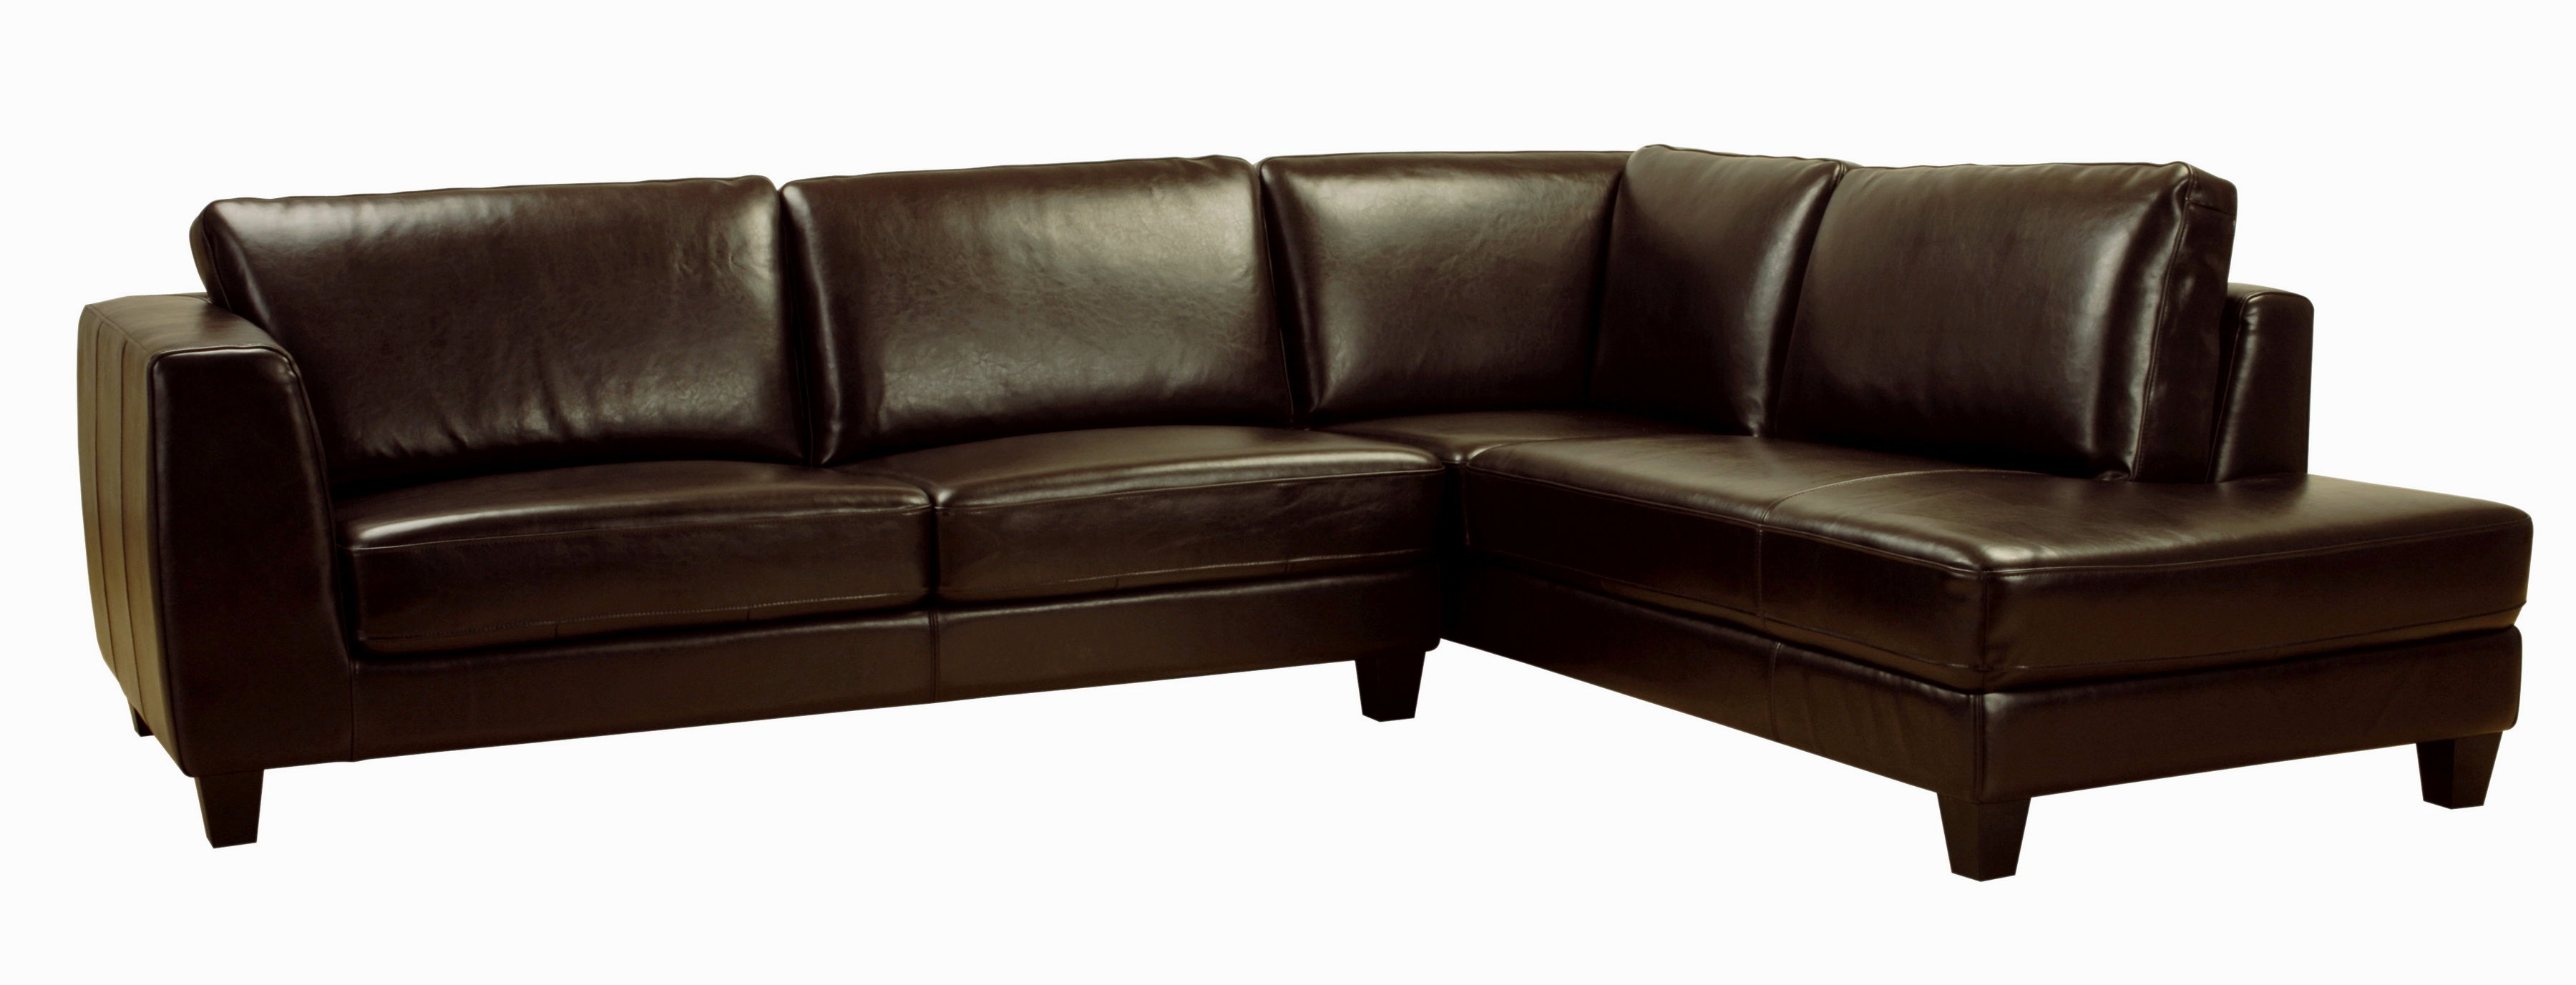 unique leather sofas on sale inspiration-Fancy Leather sofas On Sale Construction